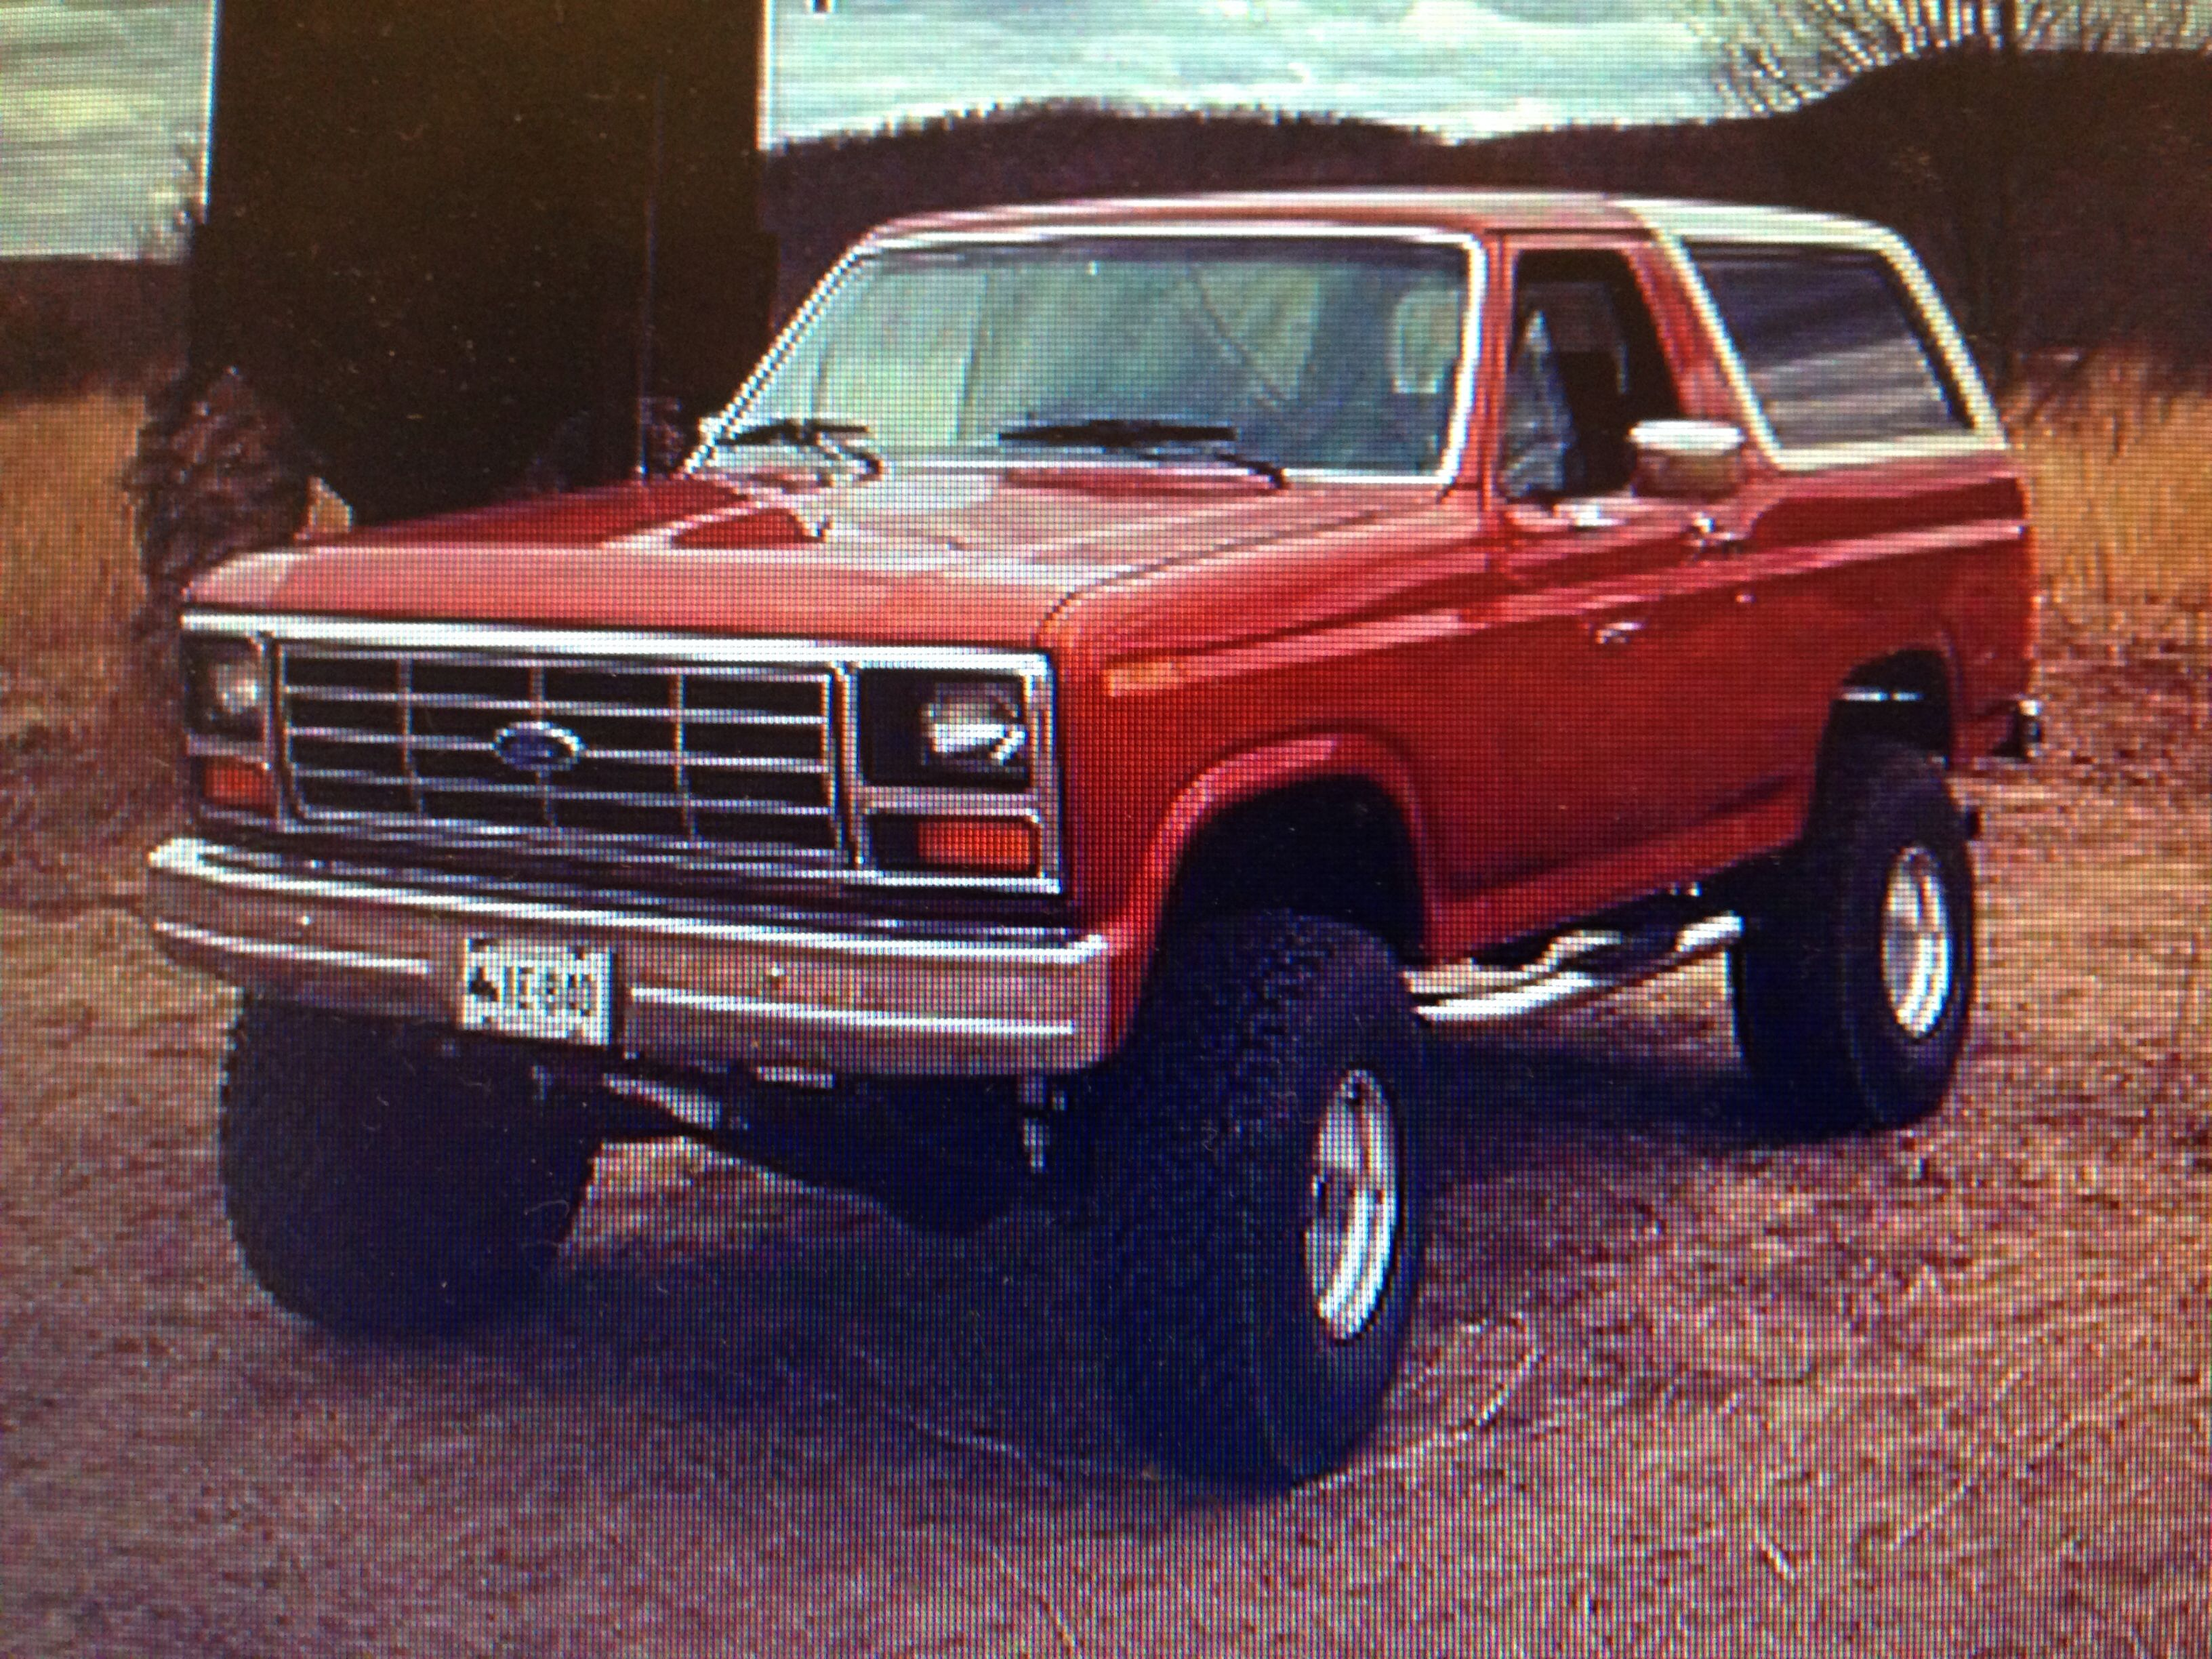 Diesel ford bronco for sale - 1986 Ford Bronco Maintenance Restoration Of Old Vintage Vehicles The Material For New